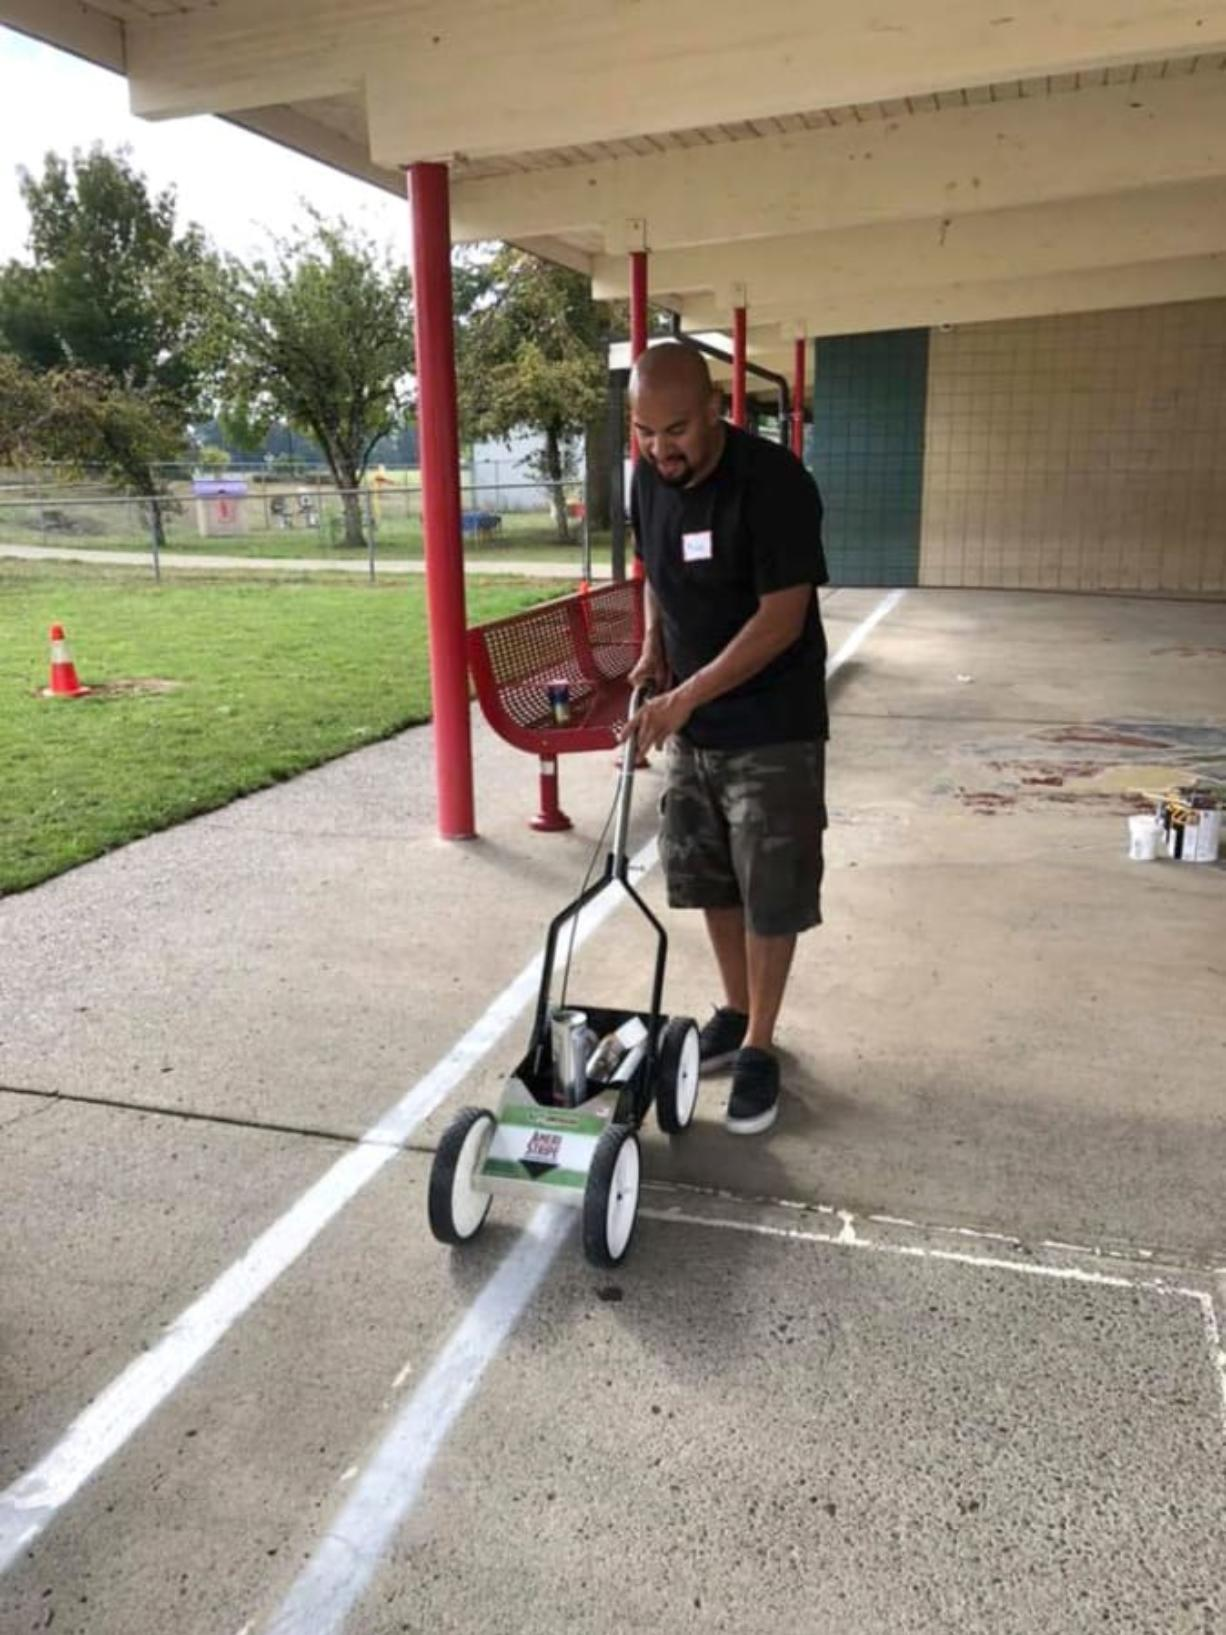 BATTLE GROUND: The local parent teachers organization for Glenwood Heights Primary School worked to beautify the playground recently. Volunteers power washed the grounds and painted new games, as well as provided more equipment for students to play with.